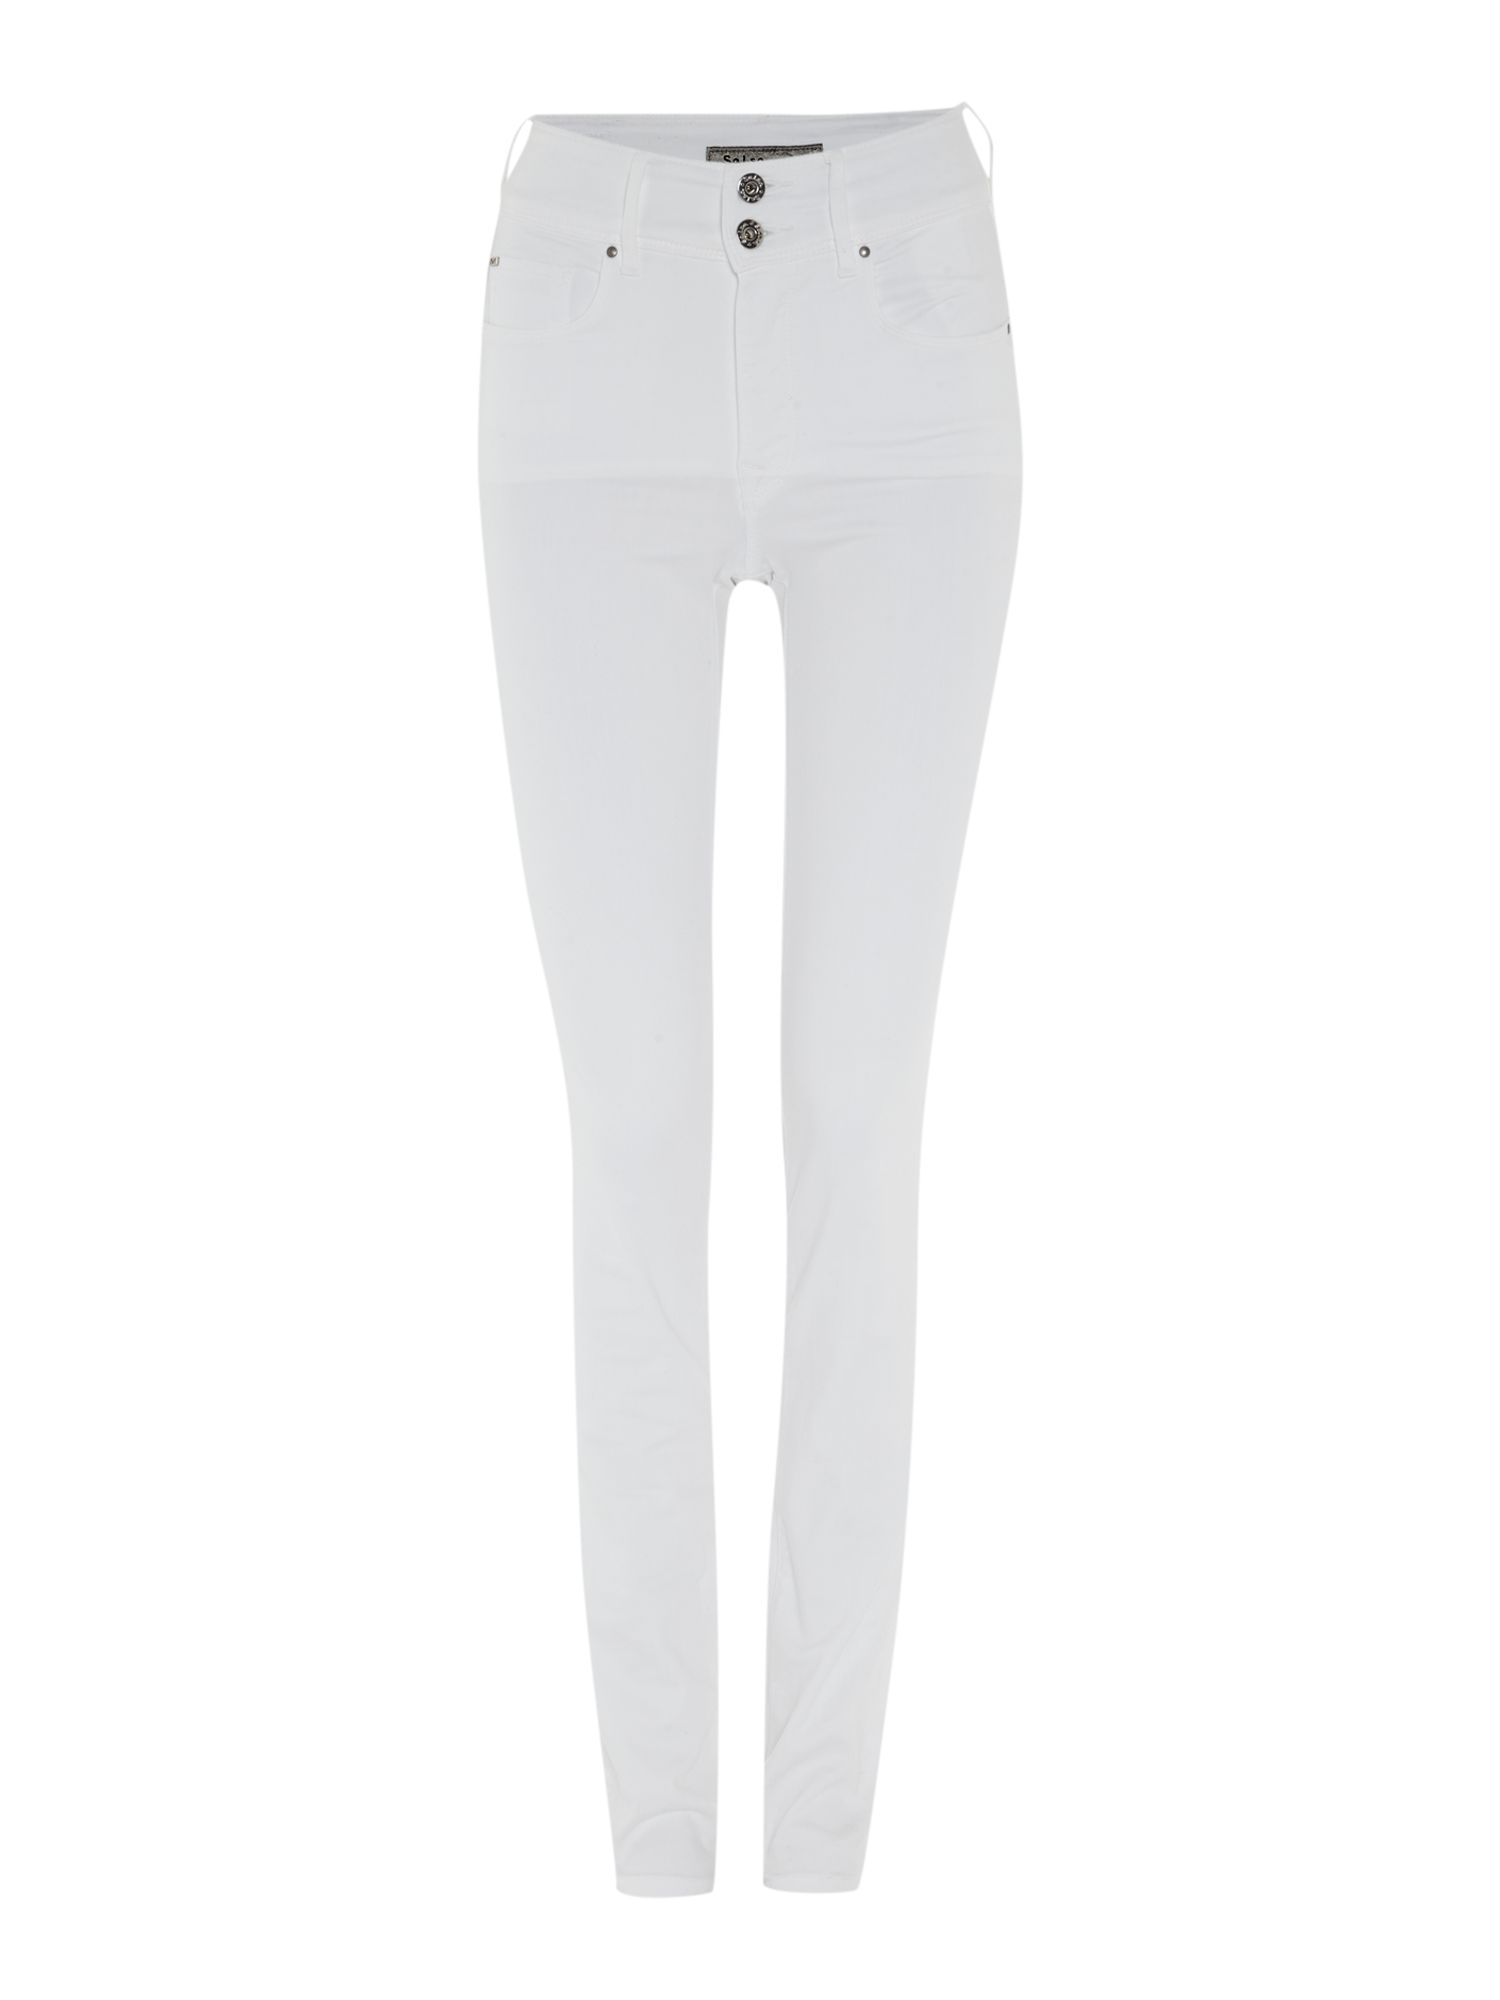 White Slim Leg Jeans - Legends Jeans